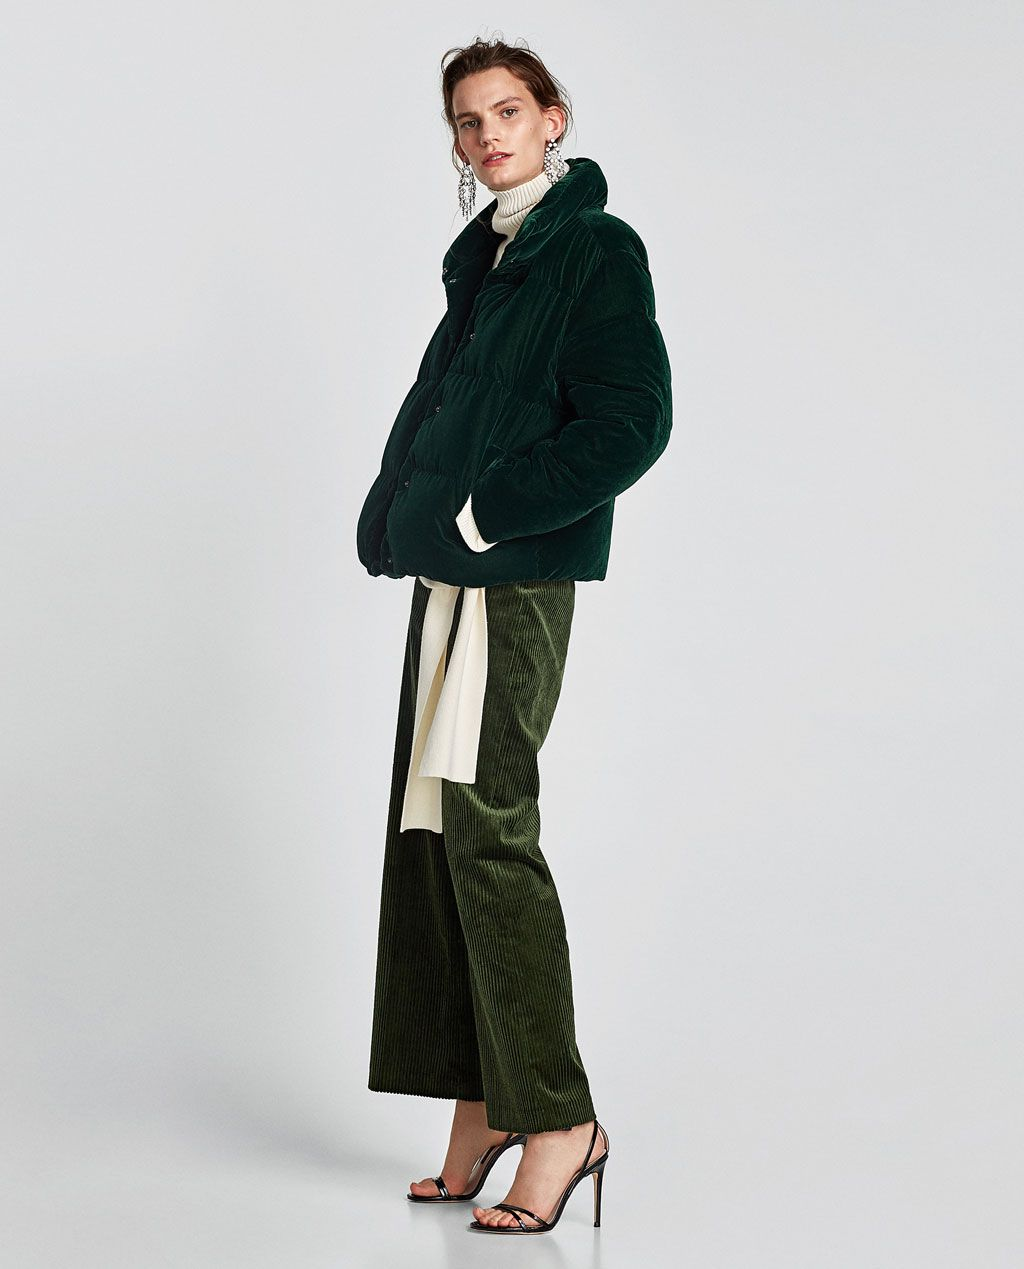 692ad261 Coat with faux fur cuffs | Fashun Hunni | Velvet jacket, Black ...